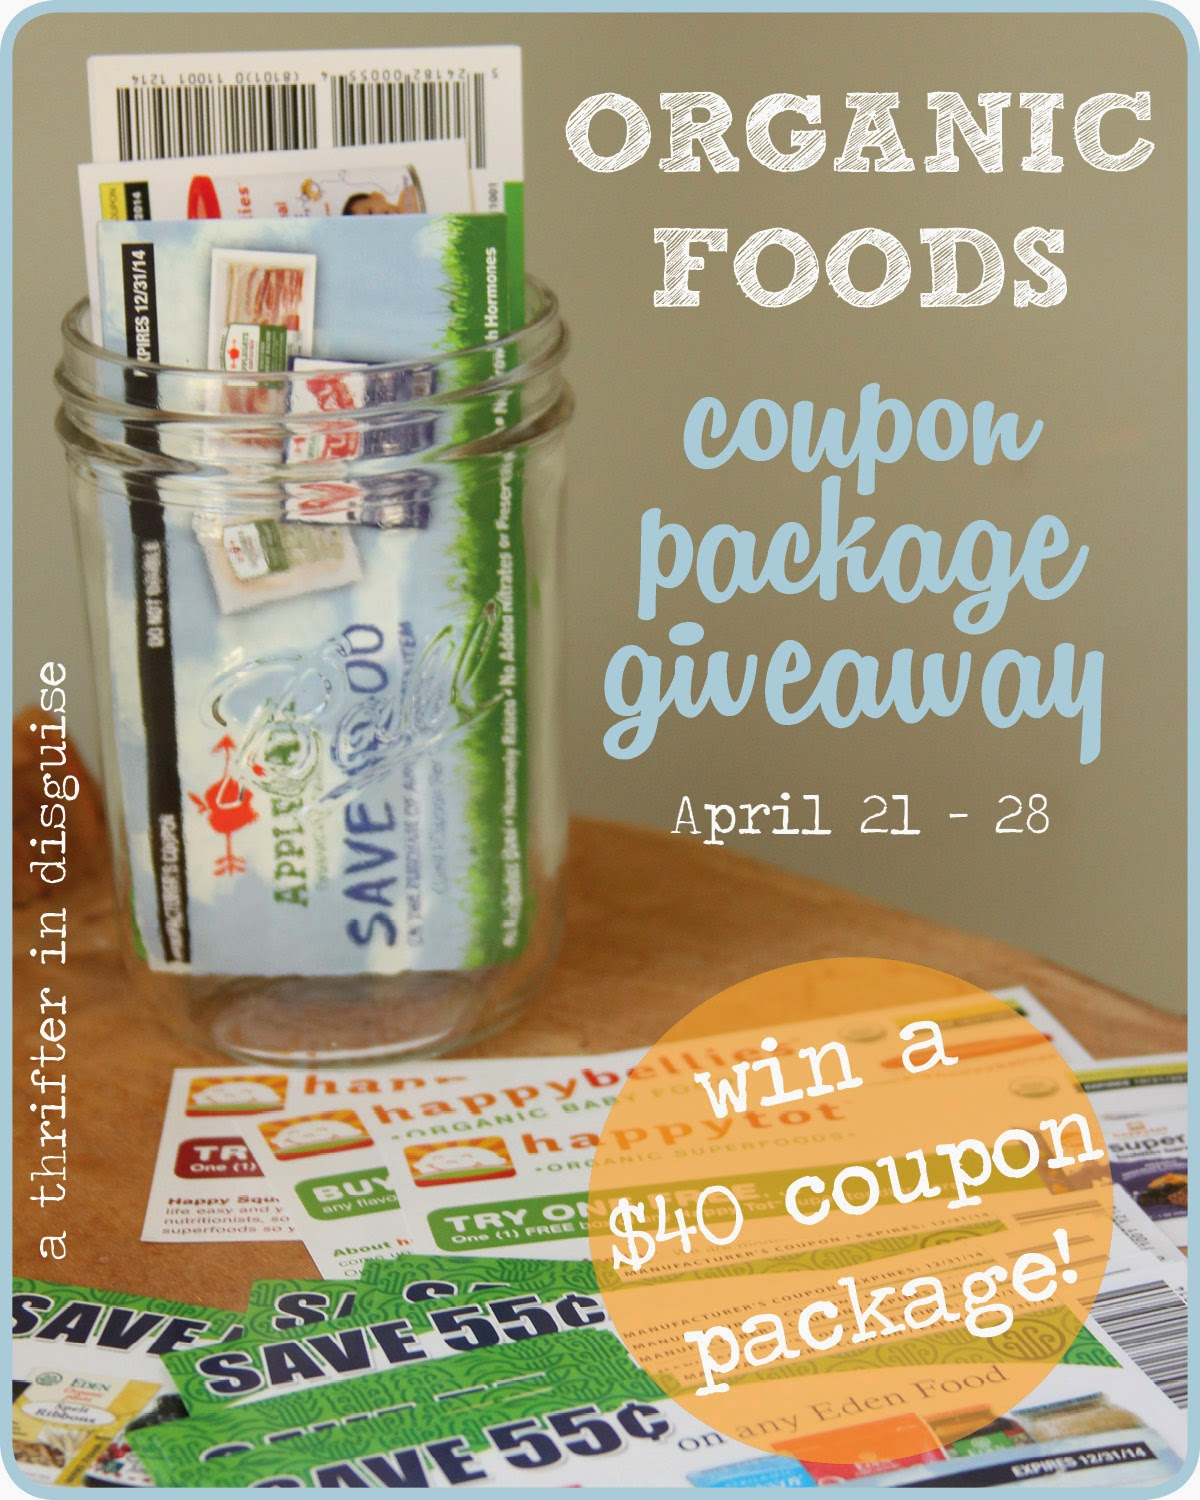 photo regarding Organic Printable Coupons known as Organic and natural goods coupon codes : August 2018 Bargains